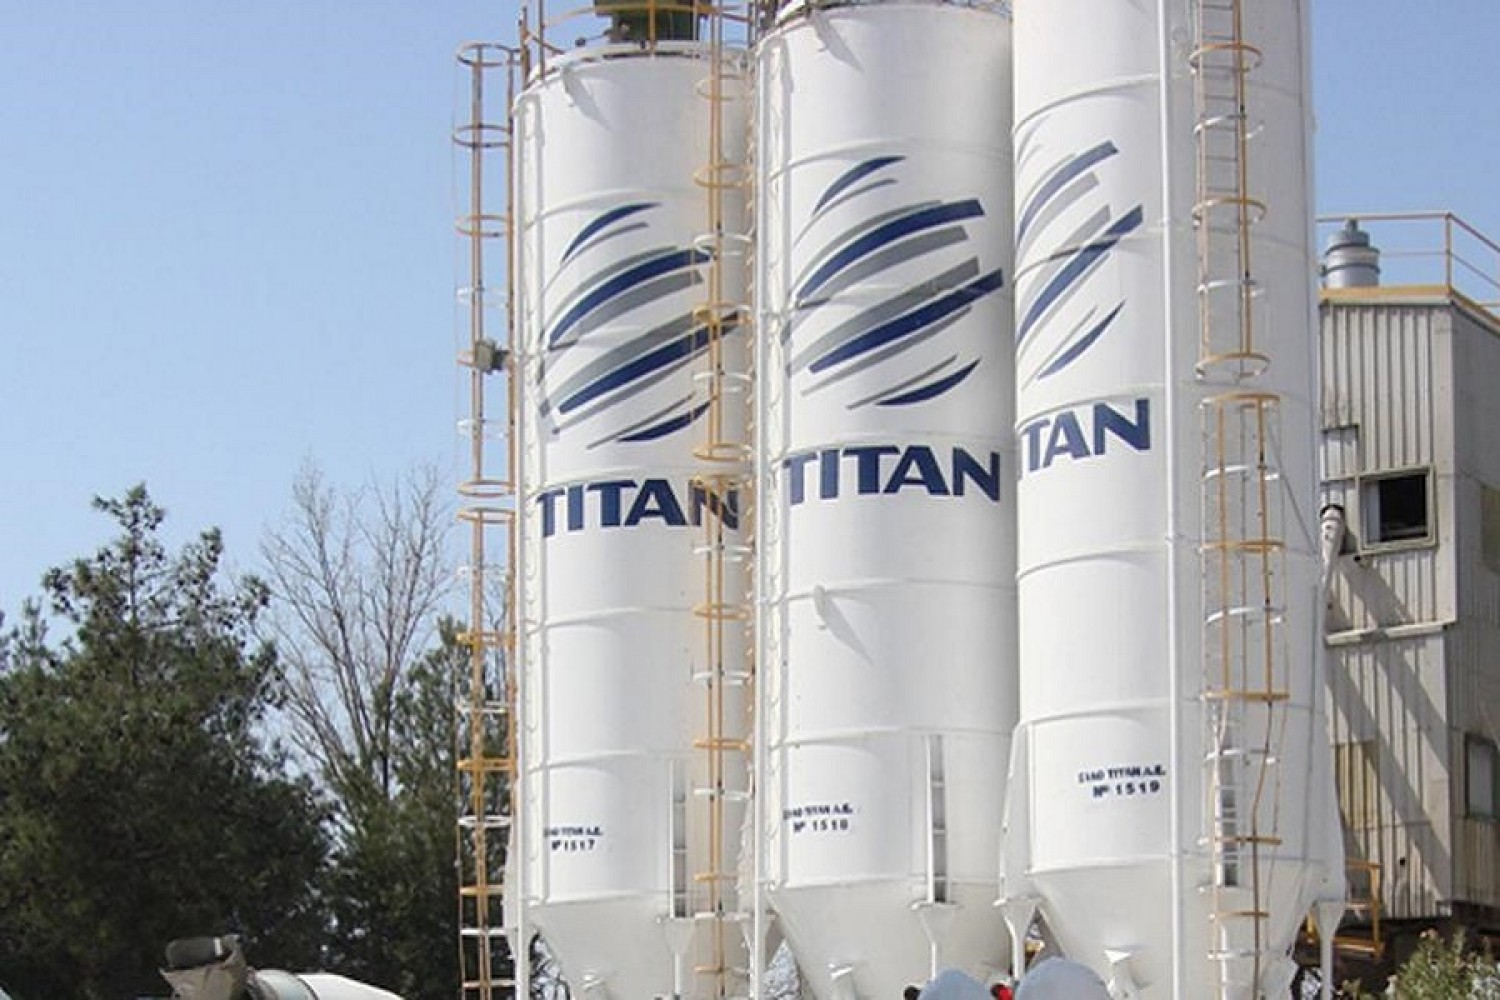 Titan Group spreads its wings and flies to Brussels